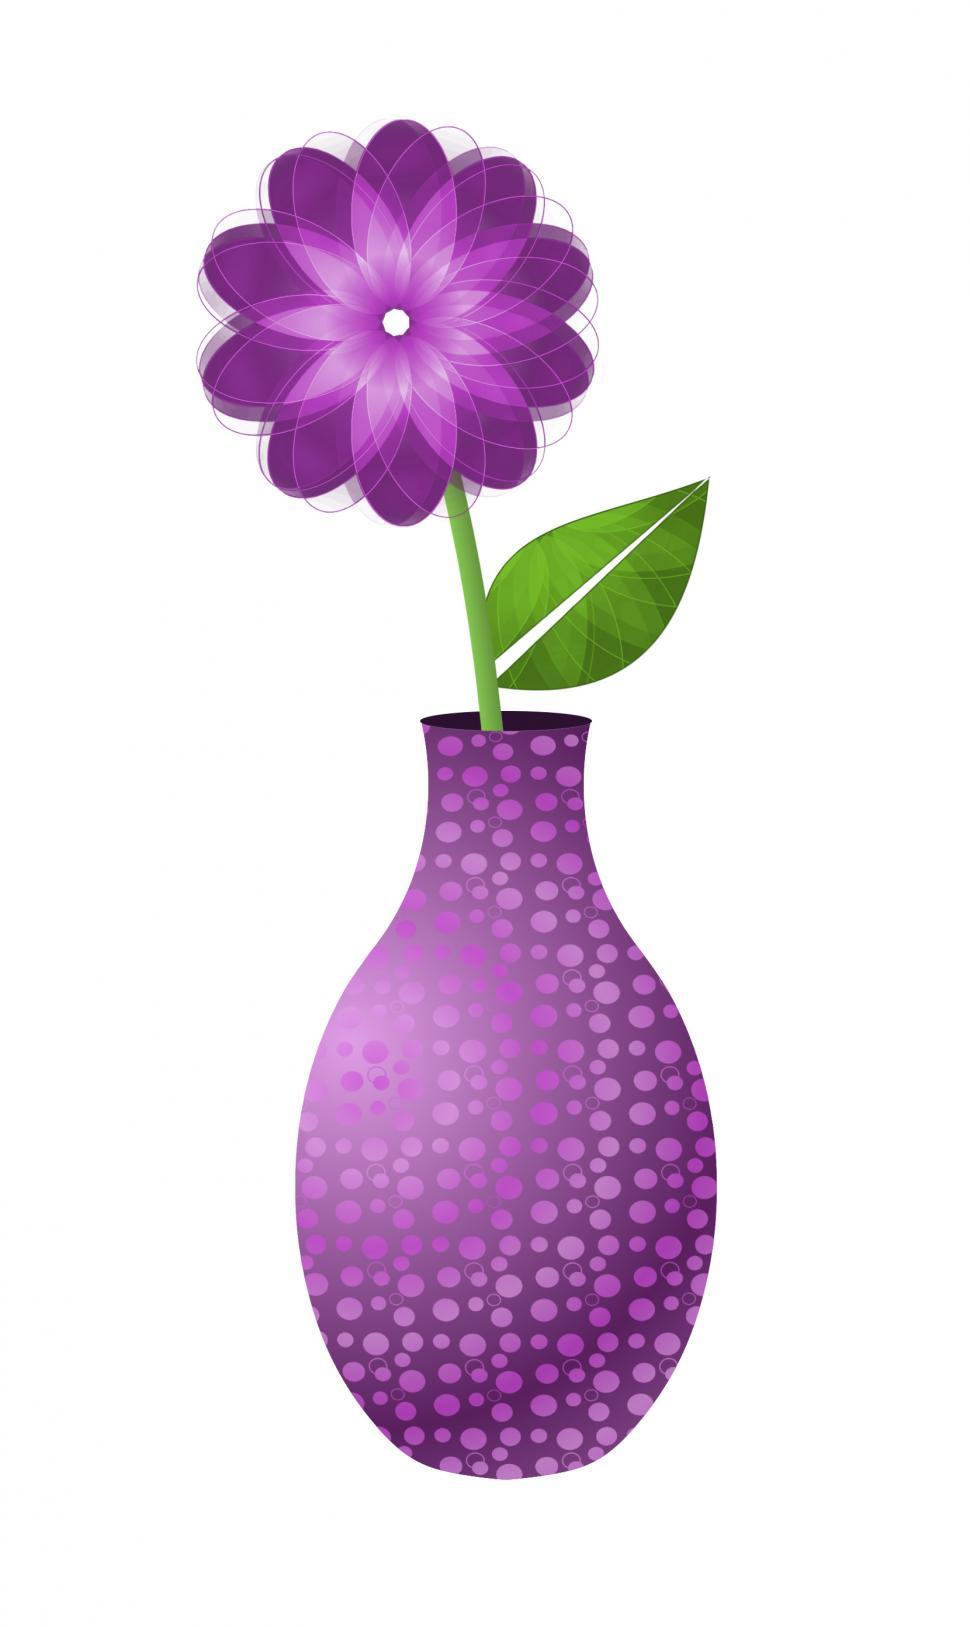 Download Free Stock HD Photo of Pink Abstract Flower in Vase  Online